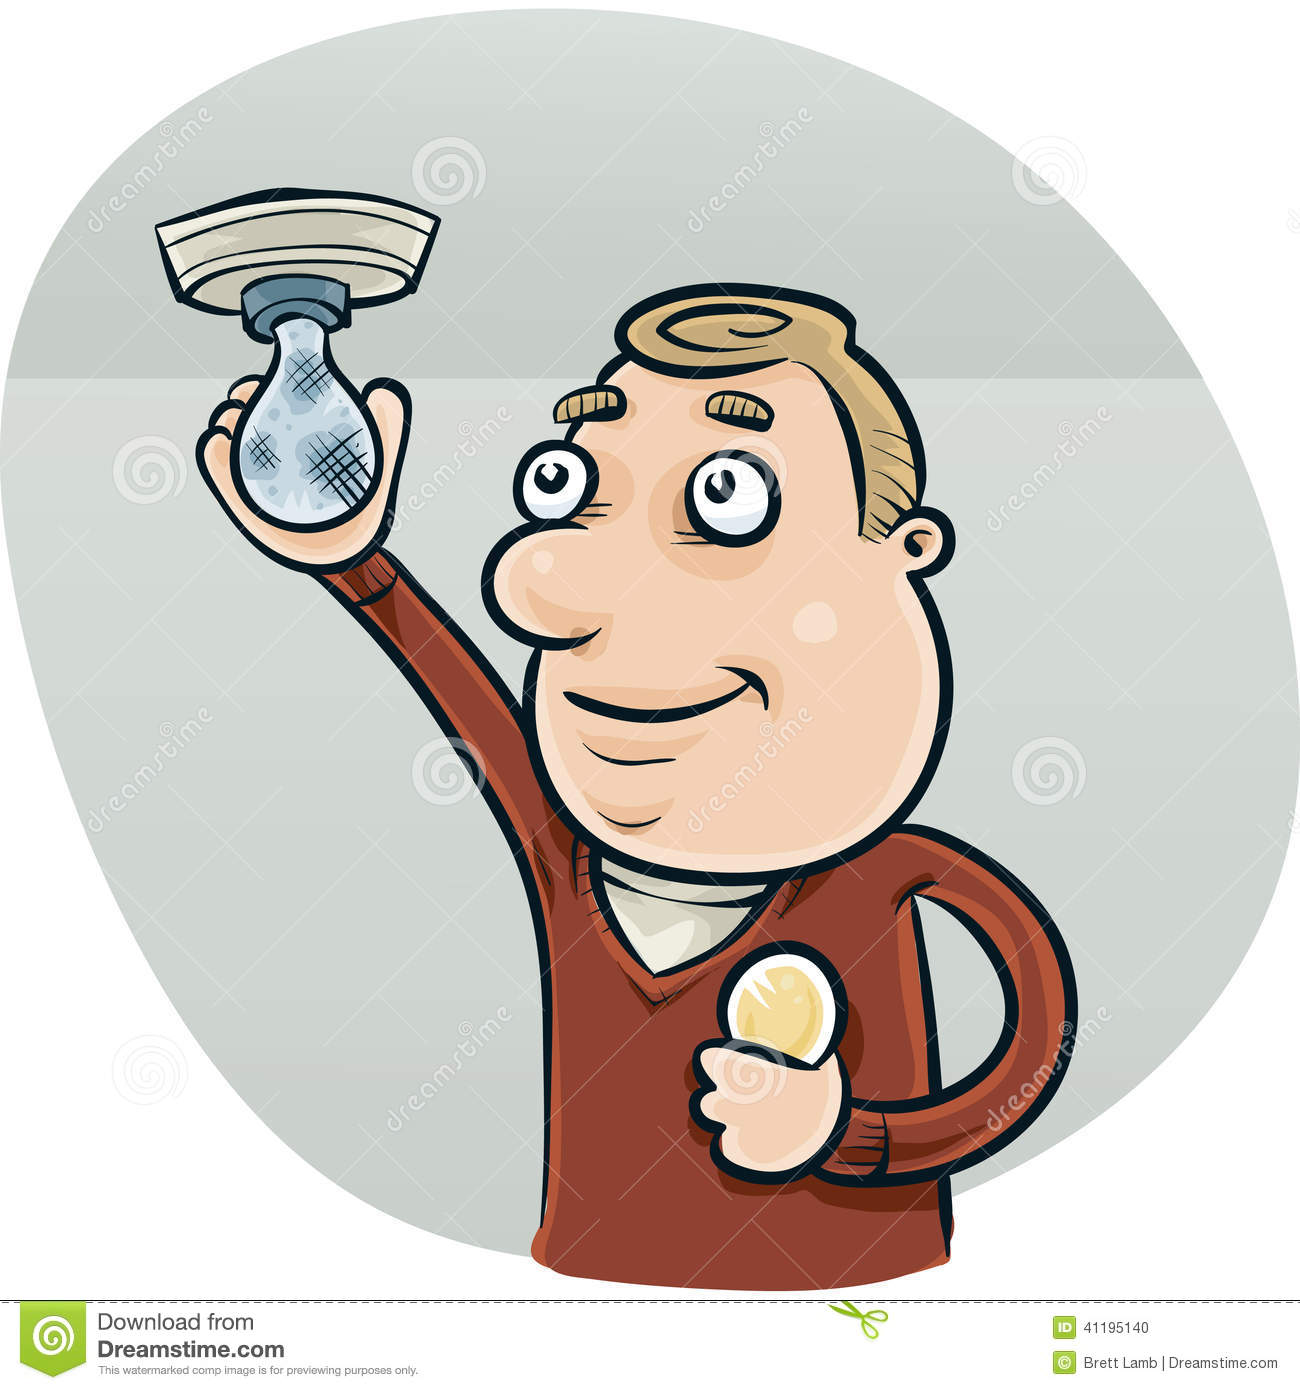 Image result for changing a lightbulb